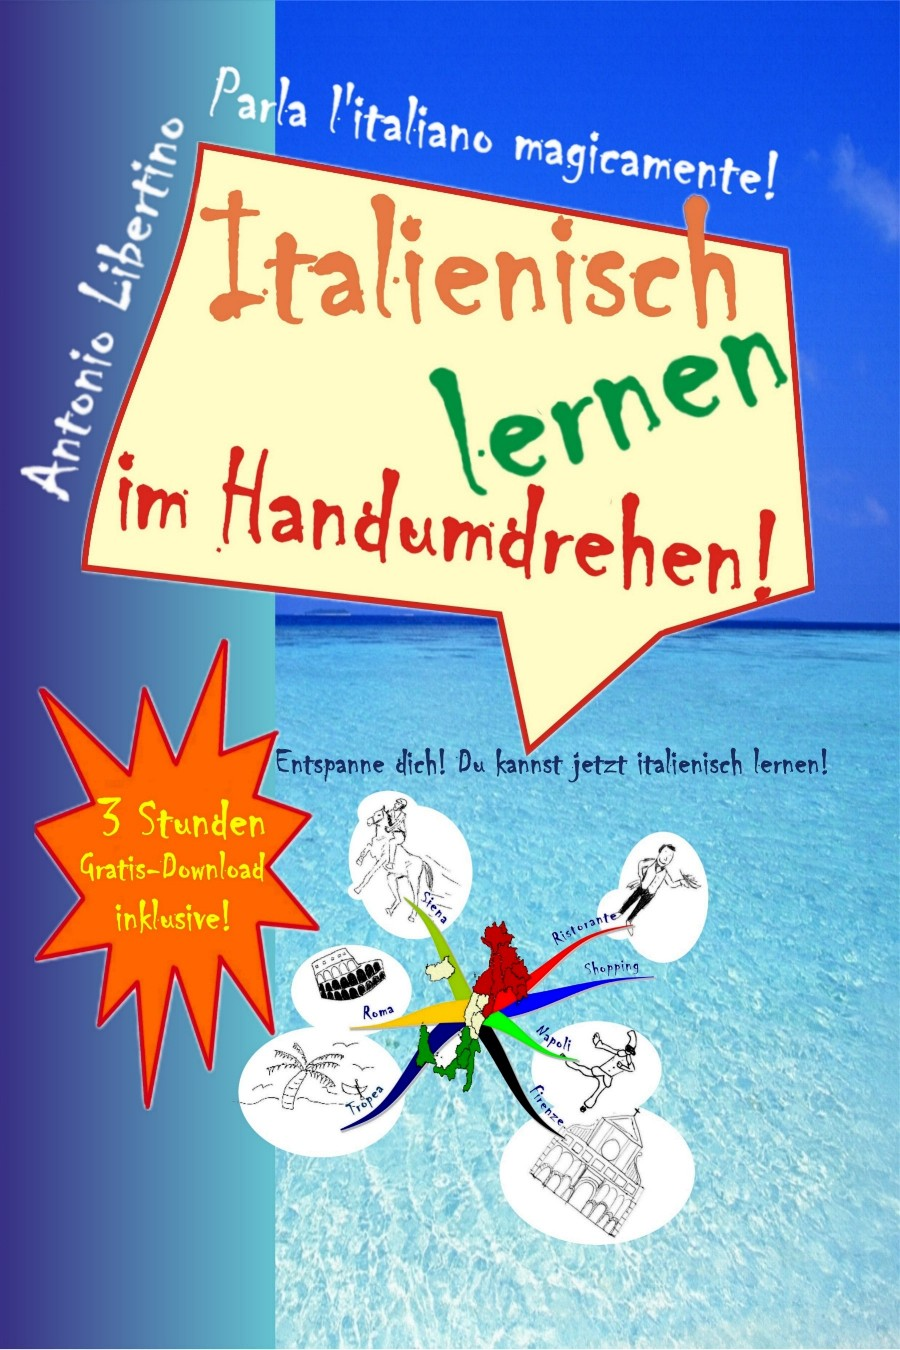 italienisch-lernen-im-handumdrehen-web.jpg